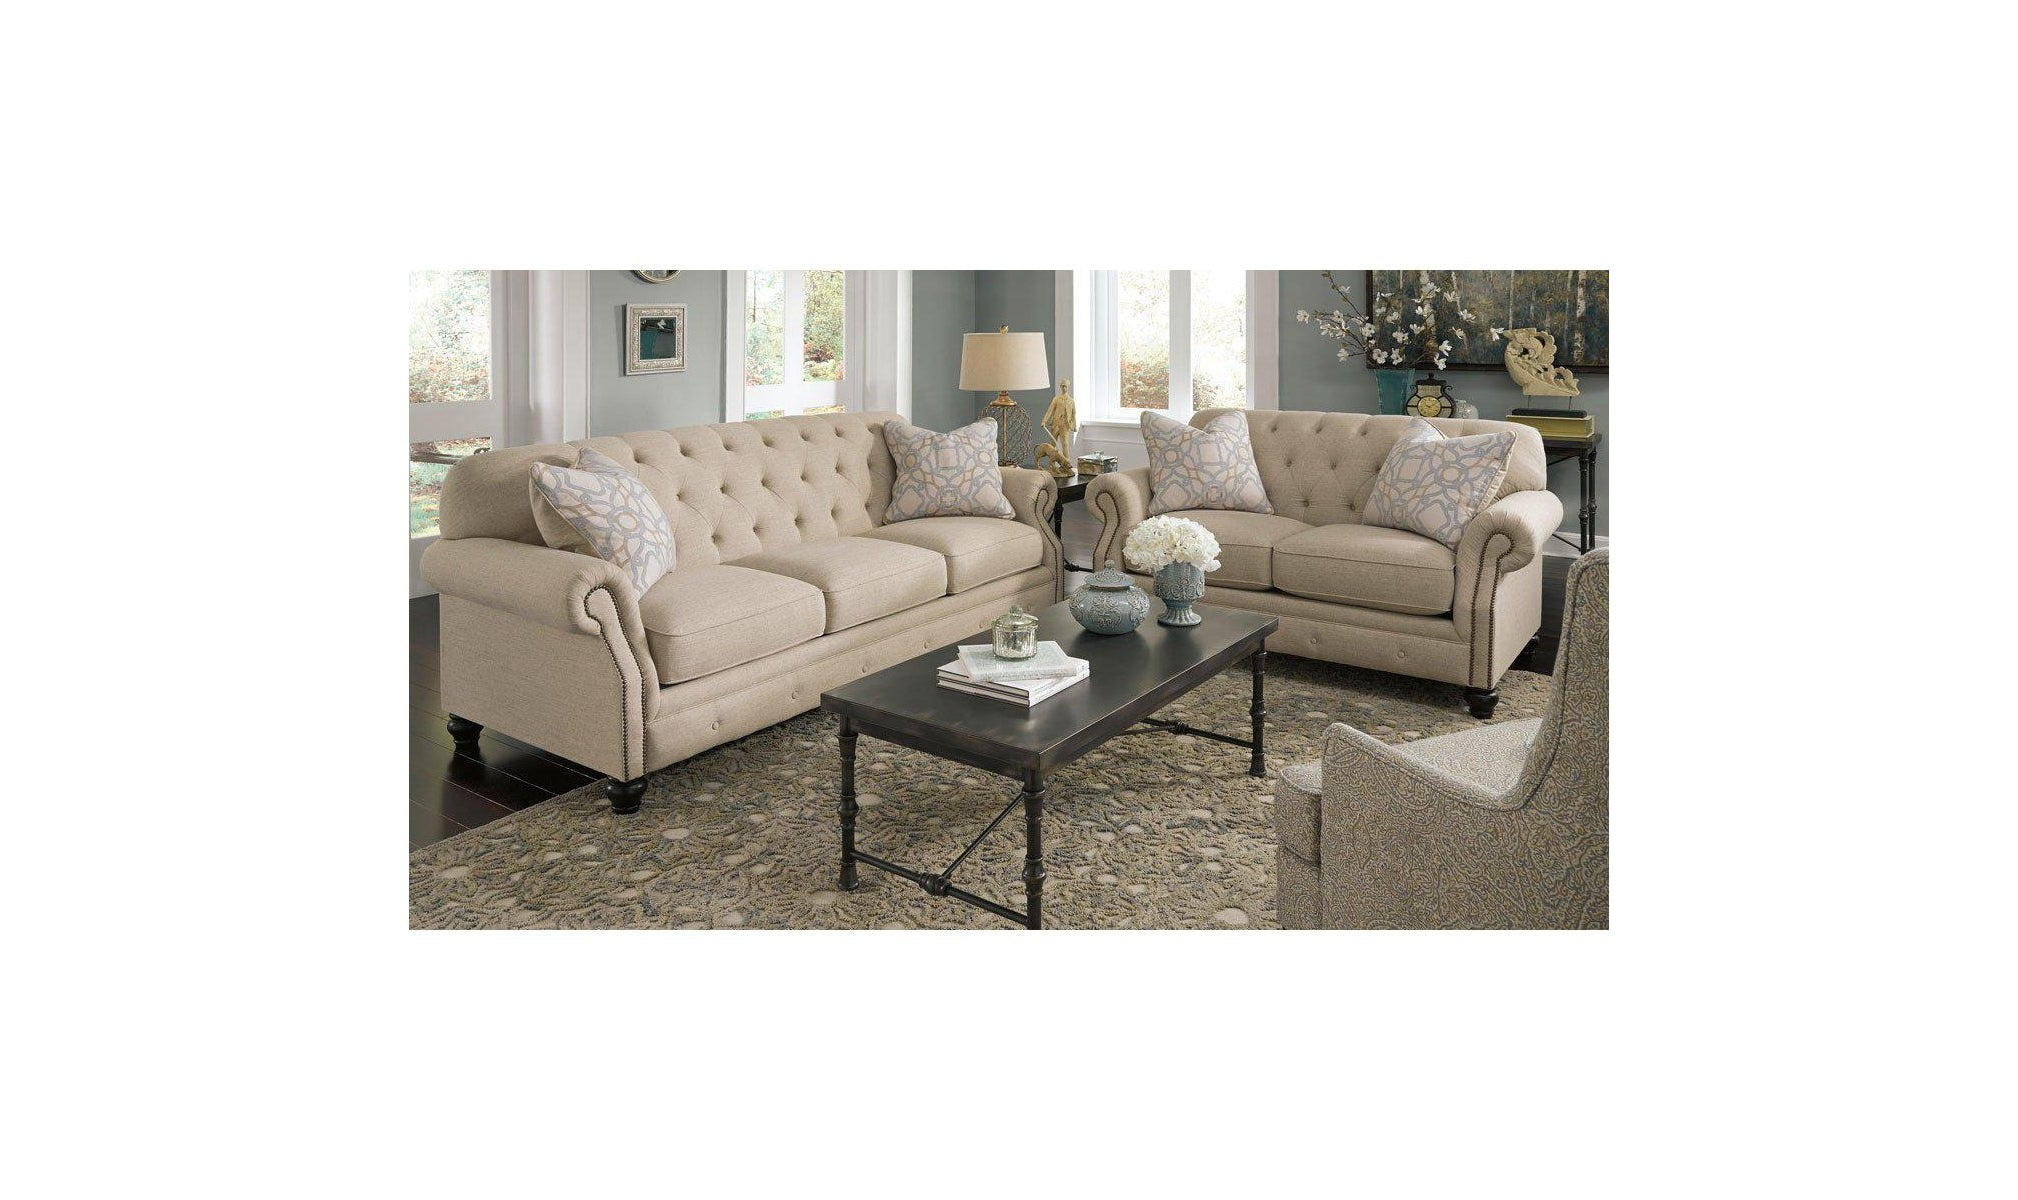 Deanna Living Room Set